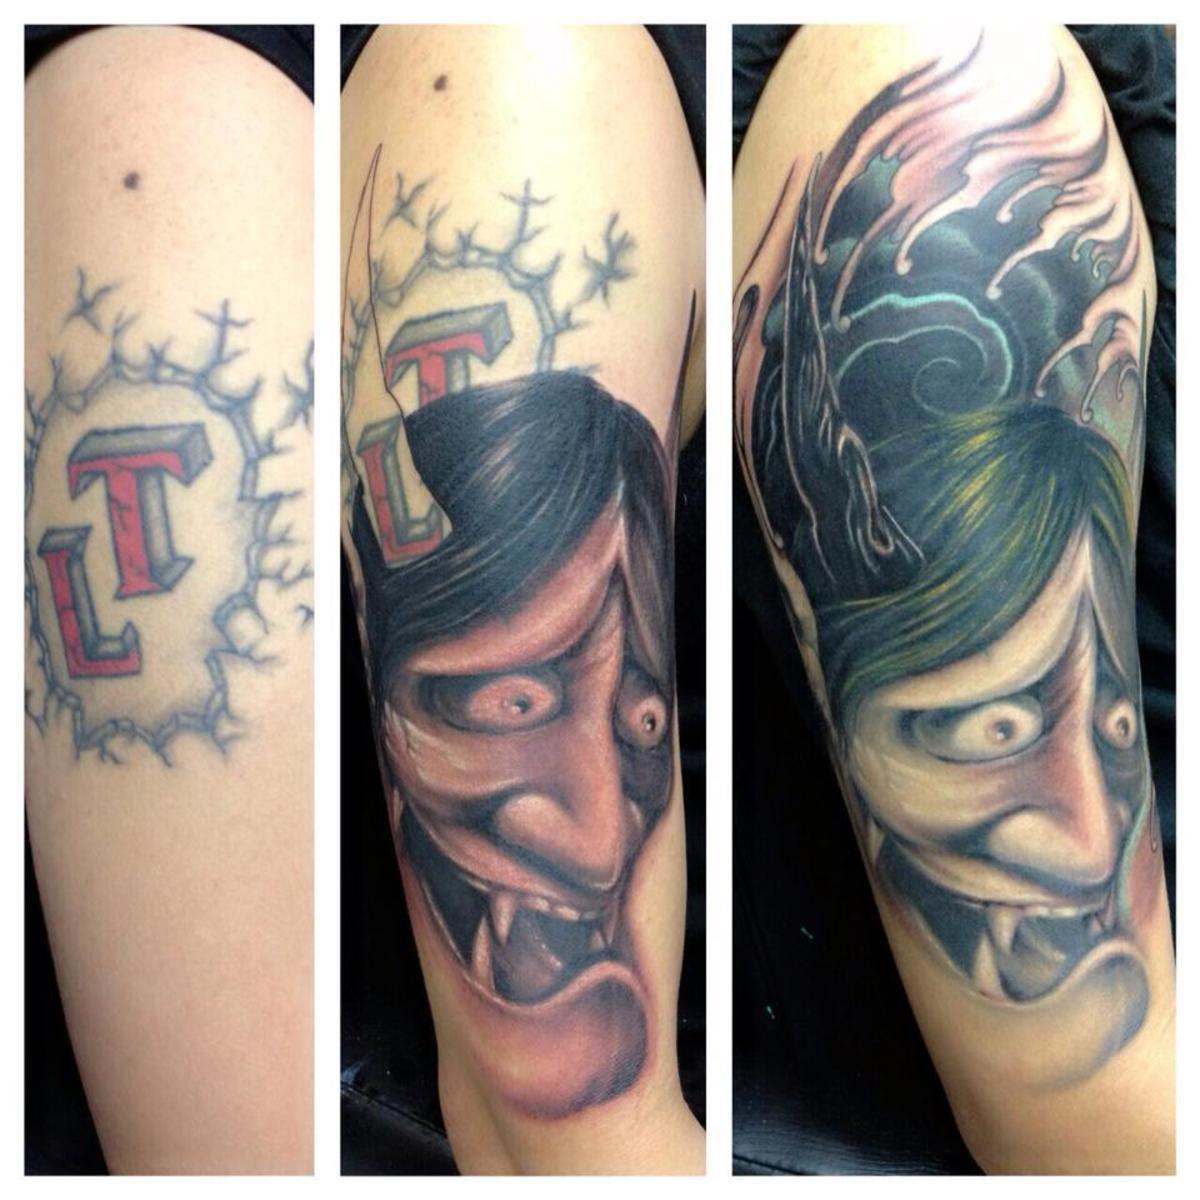 The use of the colour black has worked well with this tattoo, and the face draws the eye away from the cover-up itself.